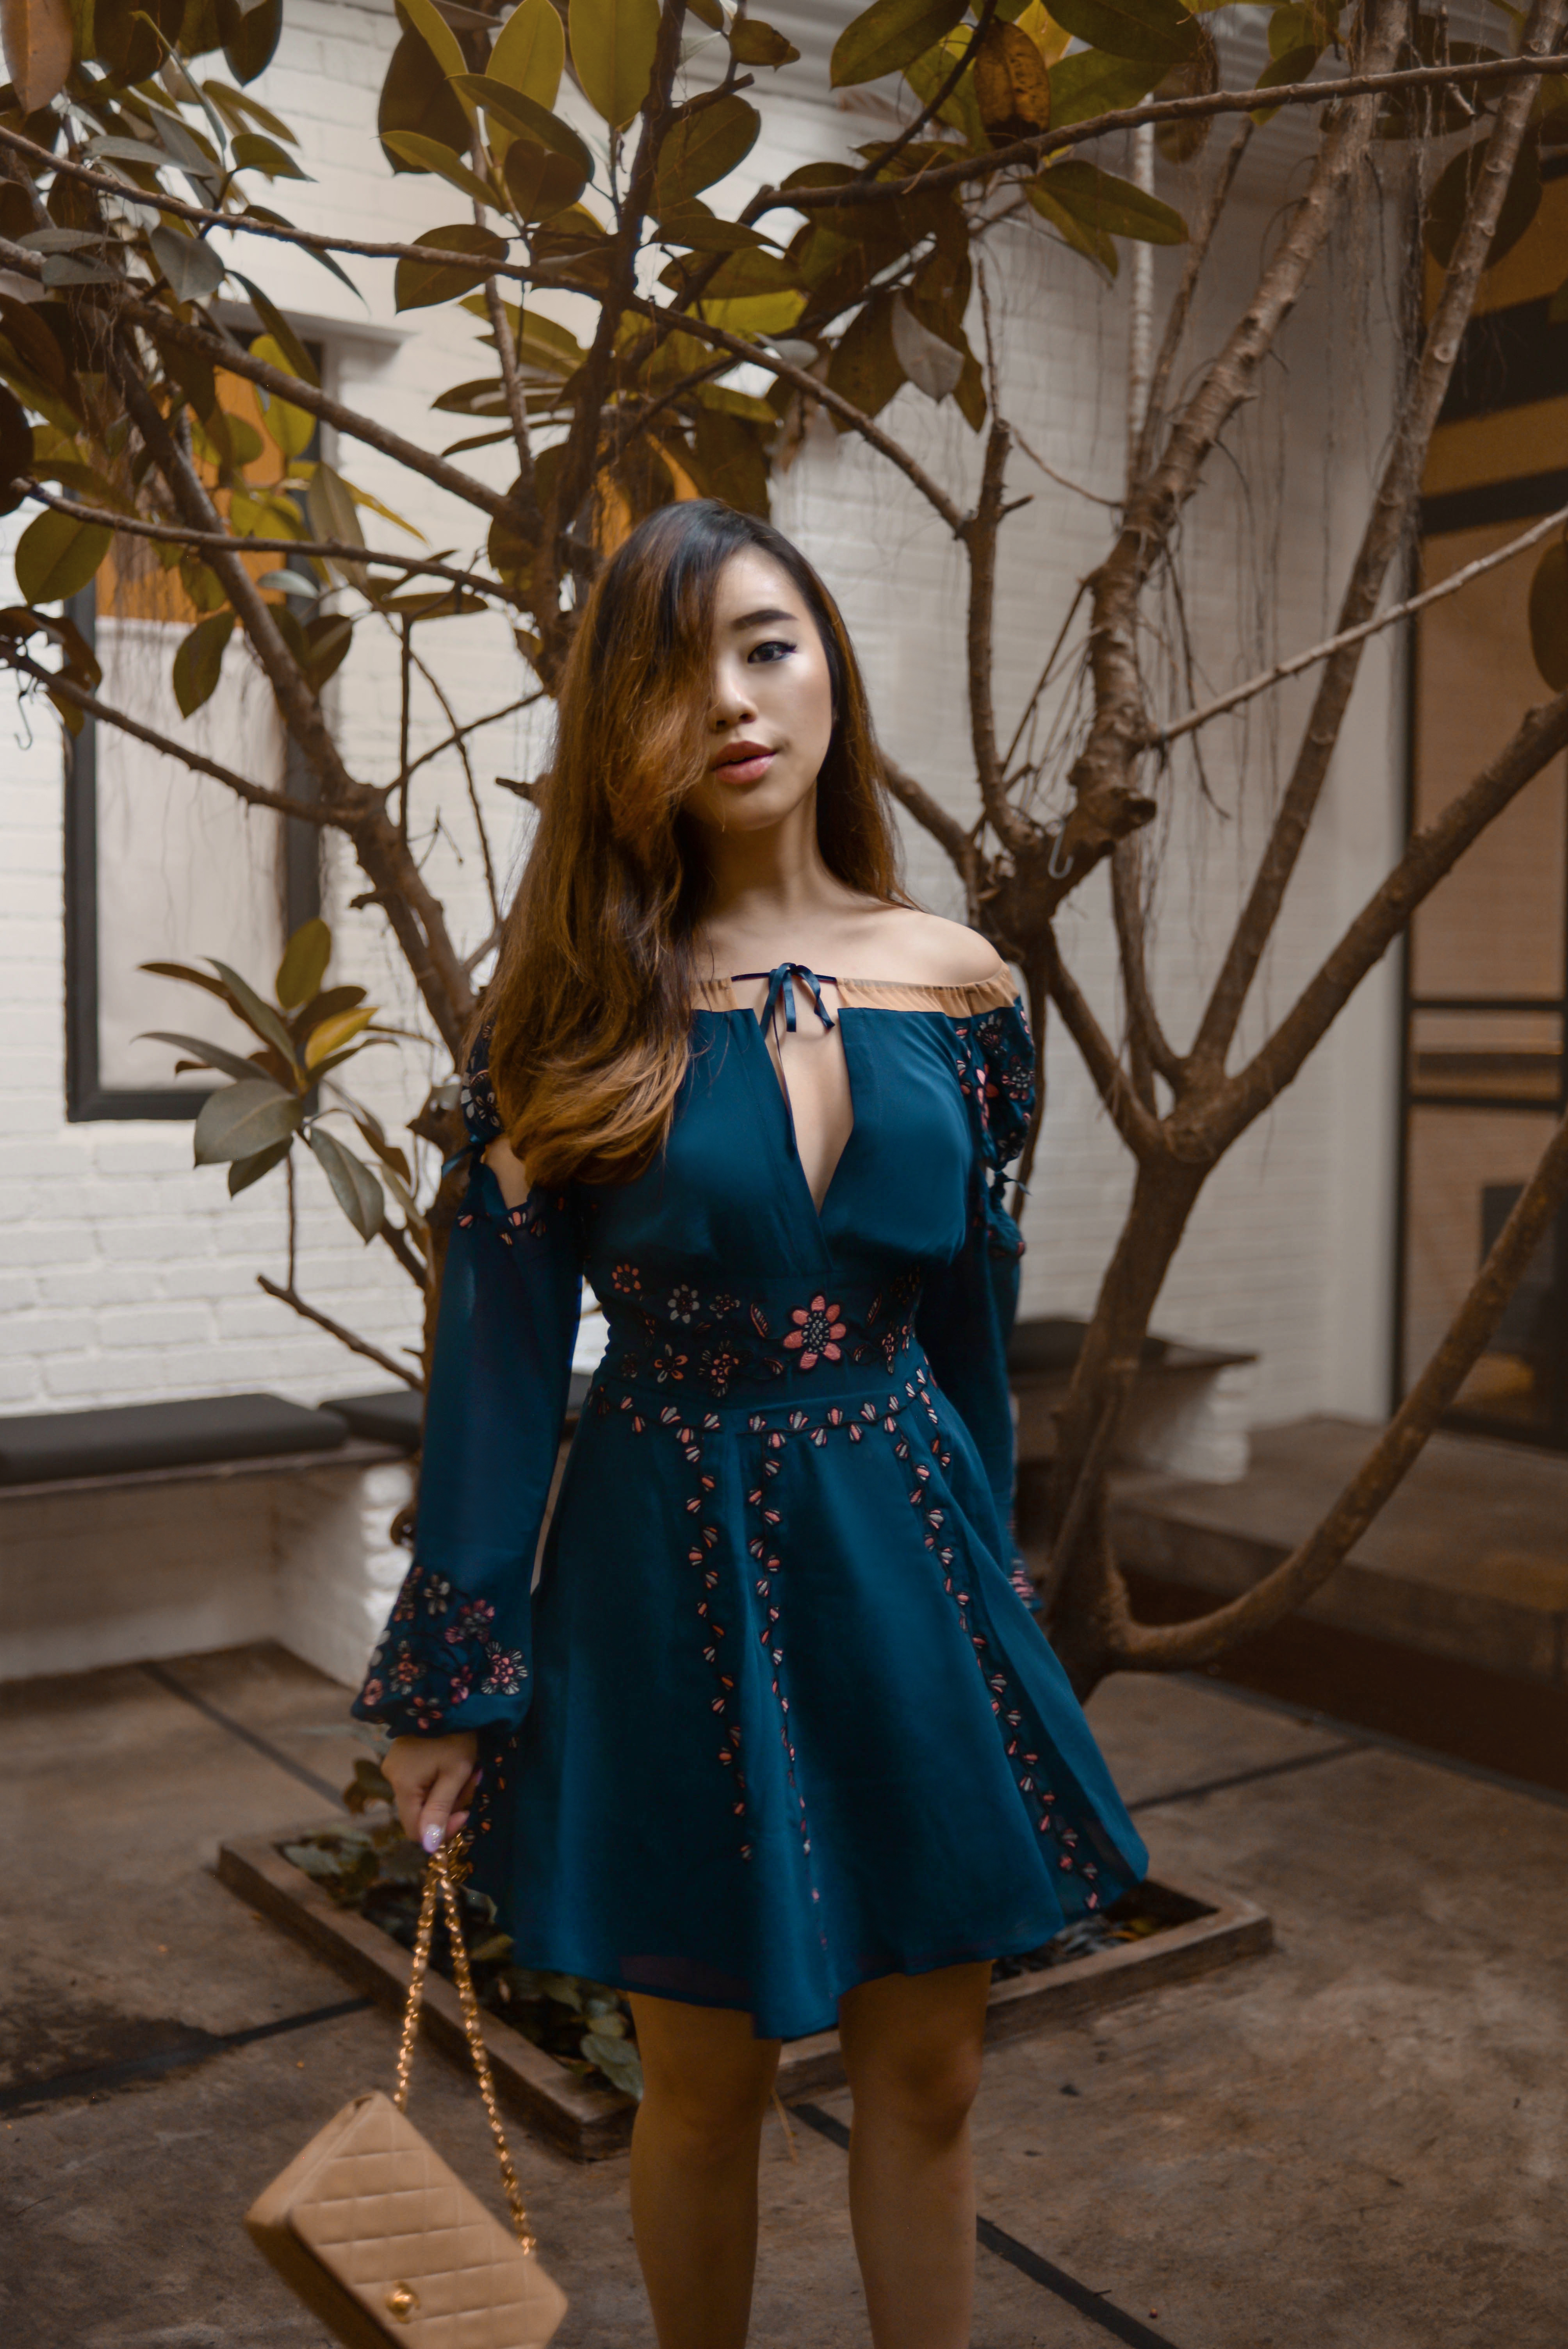 willabelle-ong-paledivision-street-style-fashion-travel-lifestyle-blog-singapore-australia-outfit-editorial-revolve-forloveandlemons-niccola-mini-dress-navy-floral-sheer-2